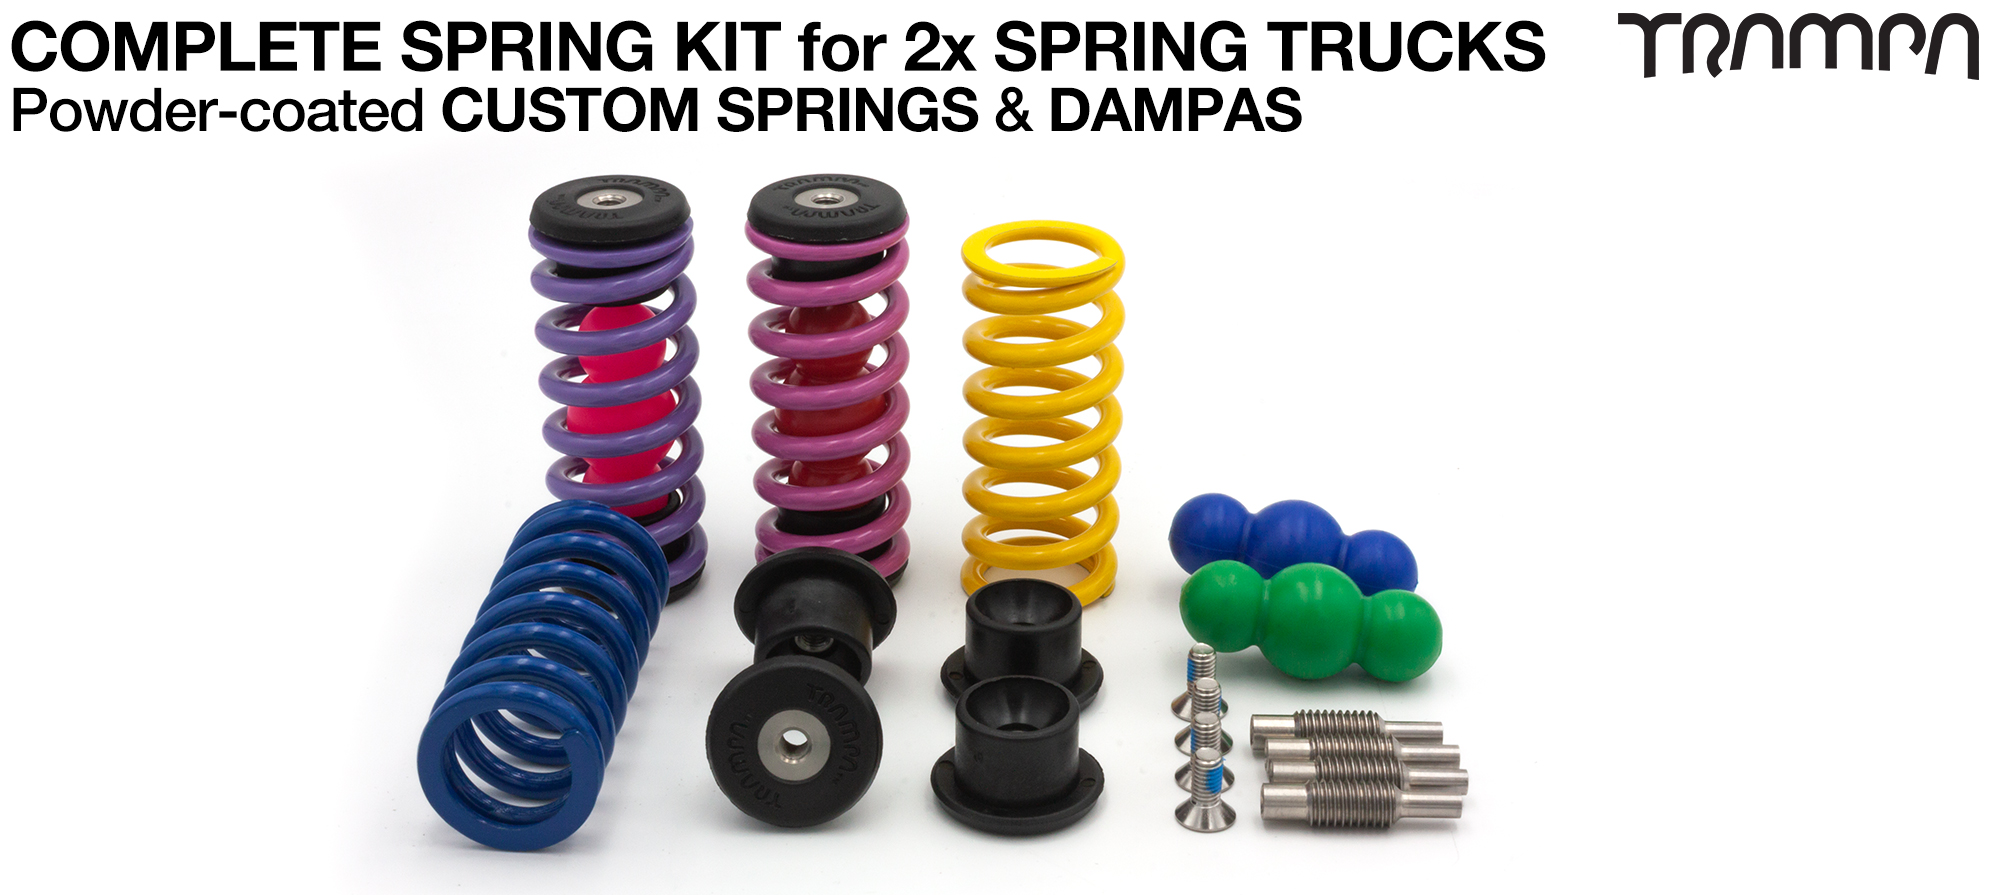 Complete Spring kit for 1x Board = 4x Spring 4x Dampa 8x Spring Retainers 4x Spring Adjuster & 4 M5x12mm Countersunk Bolt